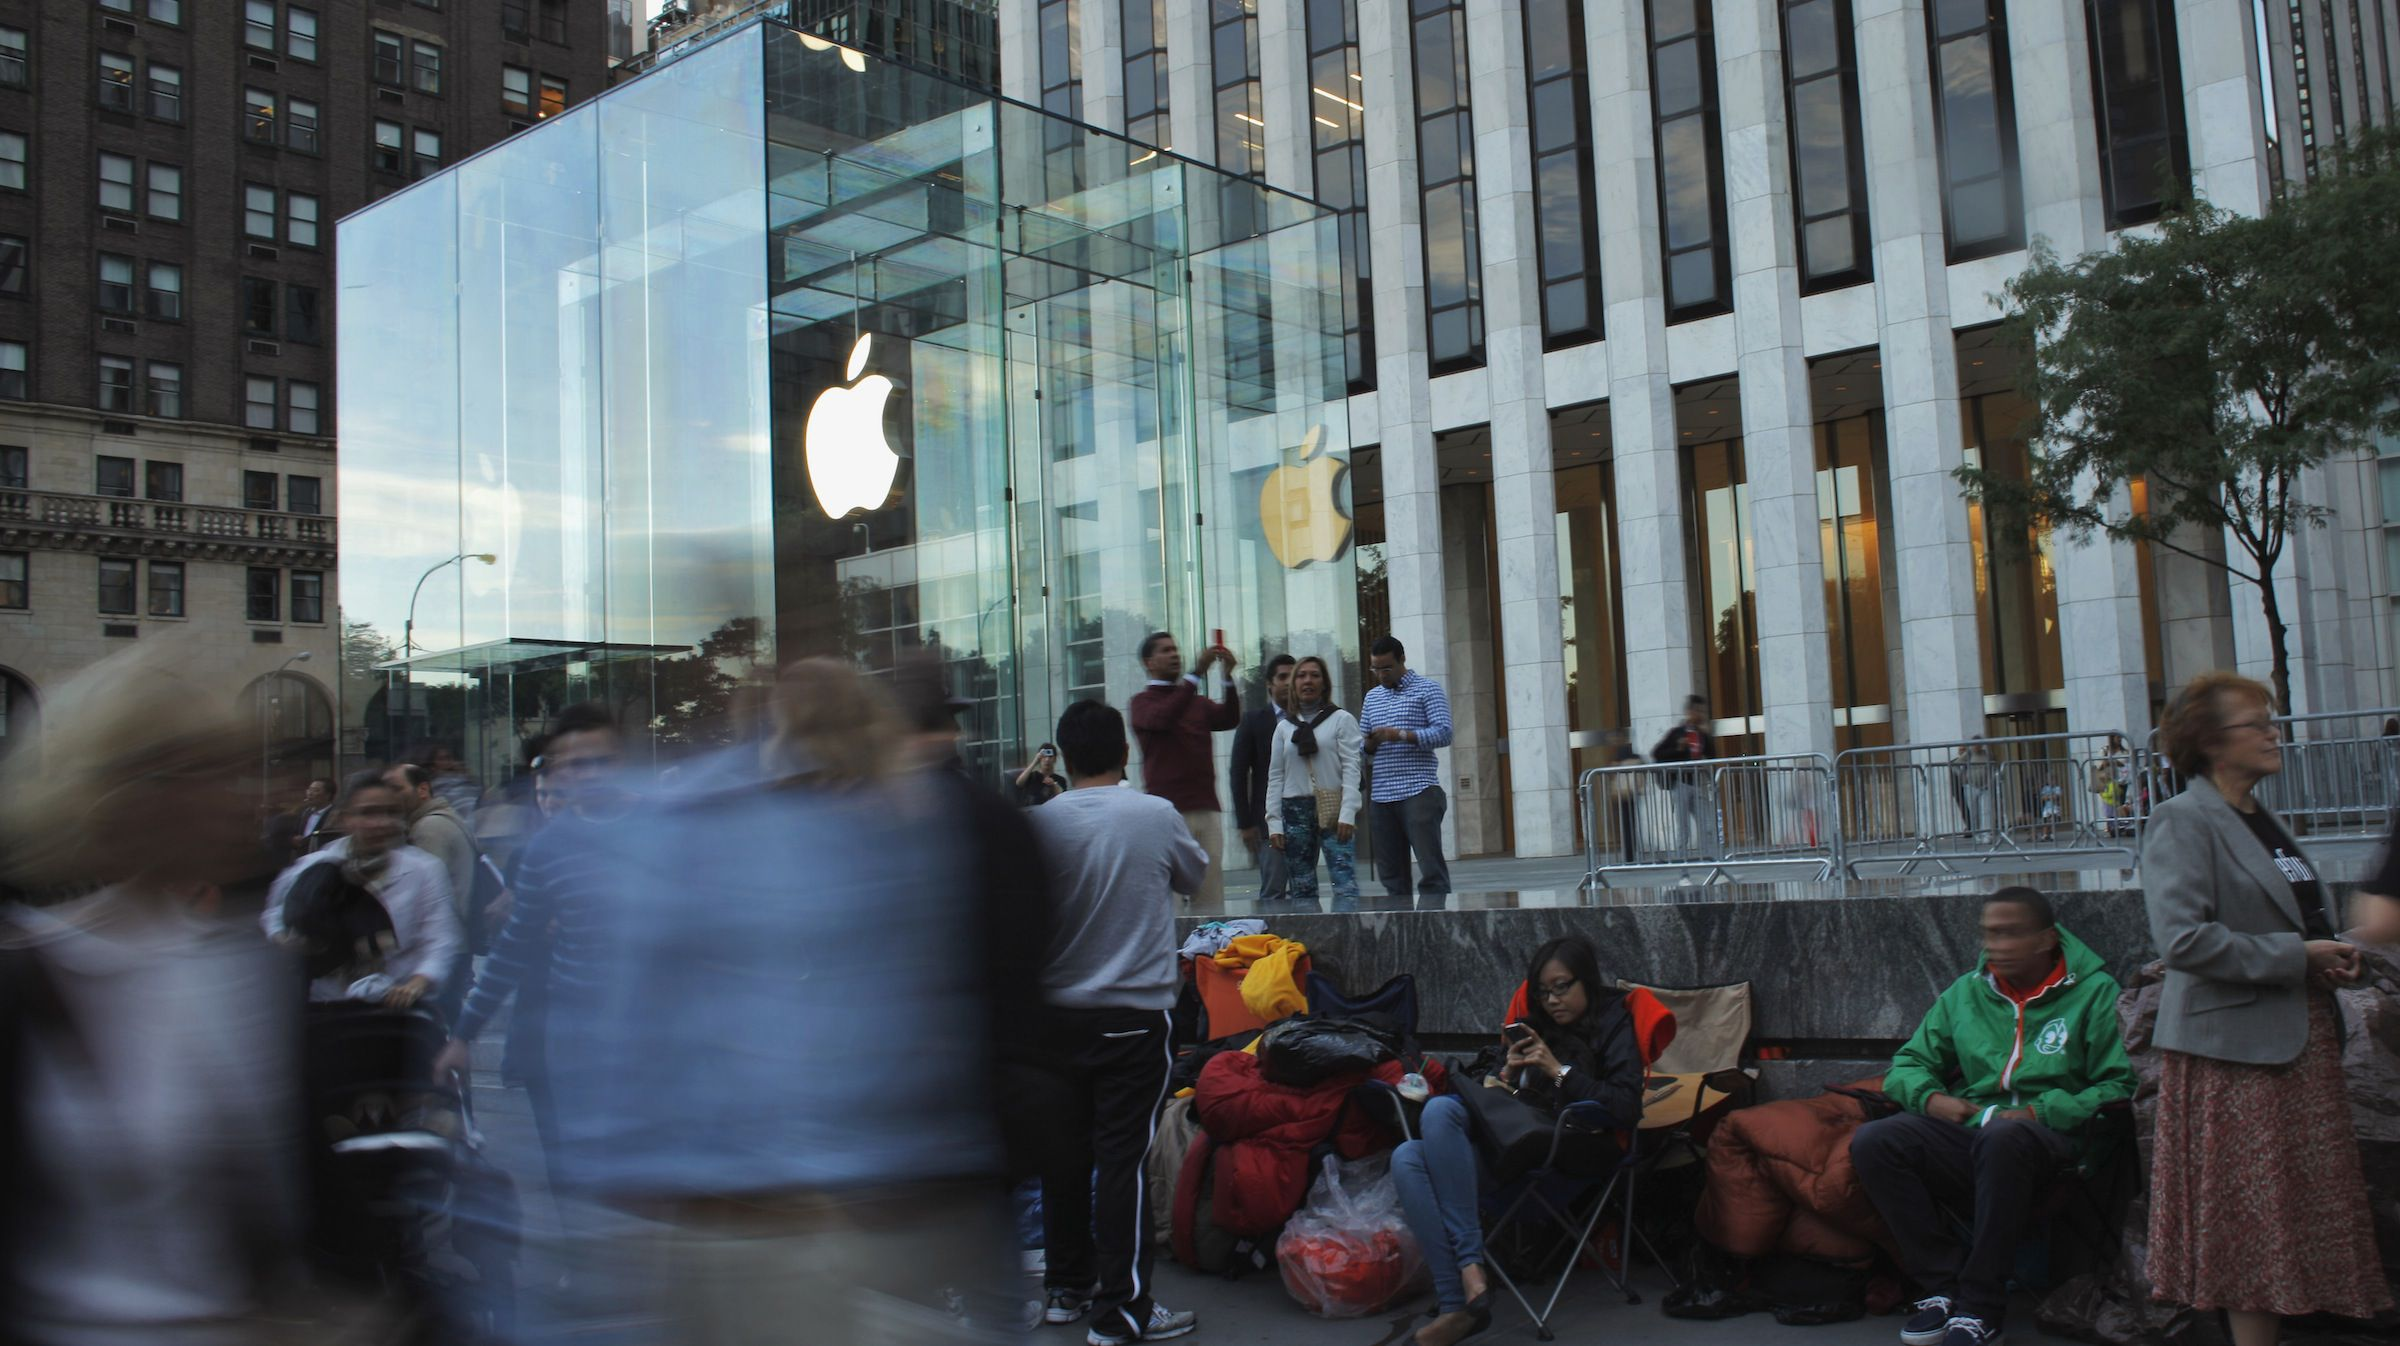 Customers wait in line outside the Apple store on 5th Avenue, for Friday's iPhone 5 models to go on sale, in New York, September 19, 2012. Apple said on Monday that pre-orders outstripped initial supply but it would deliver most phones as planned by Friday, the first day of delivery. REUTERS/Eduardo Munoz (UNITED STATES - Tags: BUSINESS SCIENCE TECHNOLOGY TELECOMS) - RTR3864T